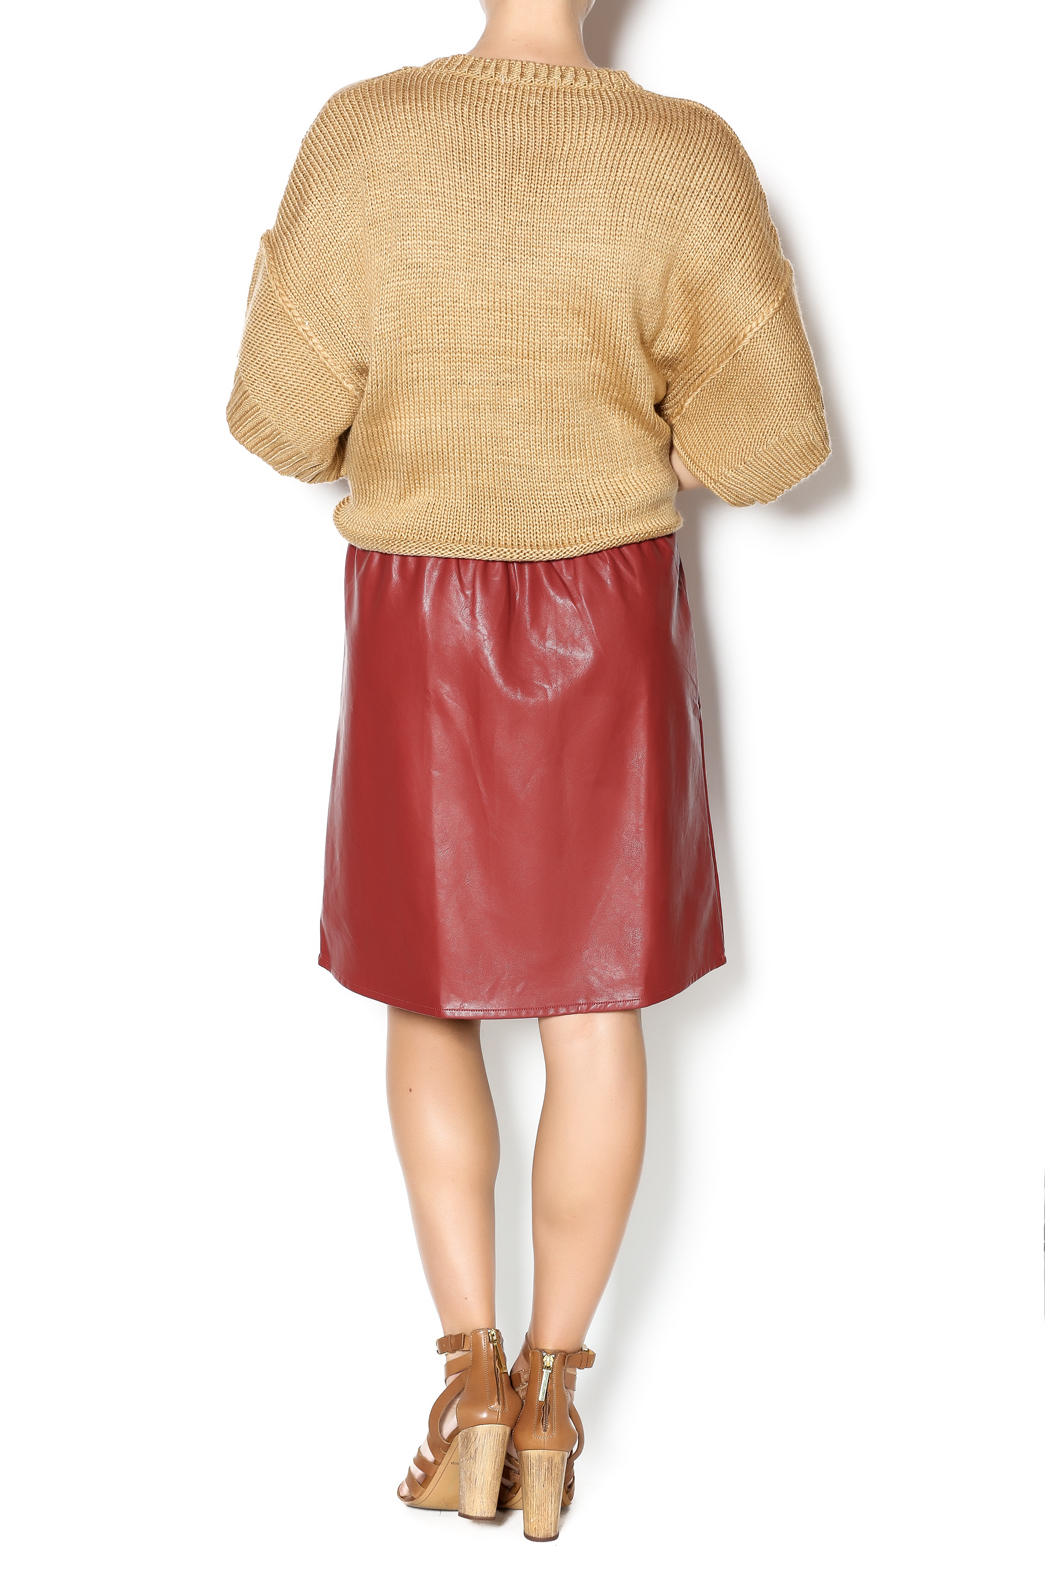 junee Faux Leather Skirt - Side Cropped Image